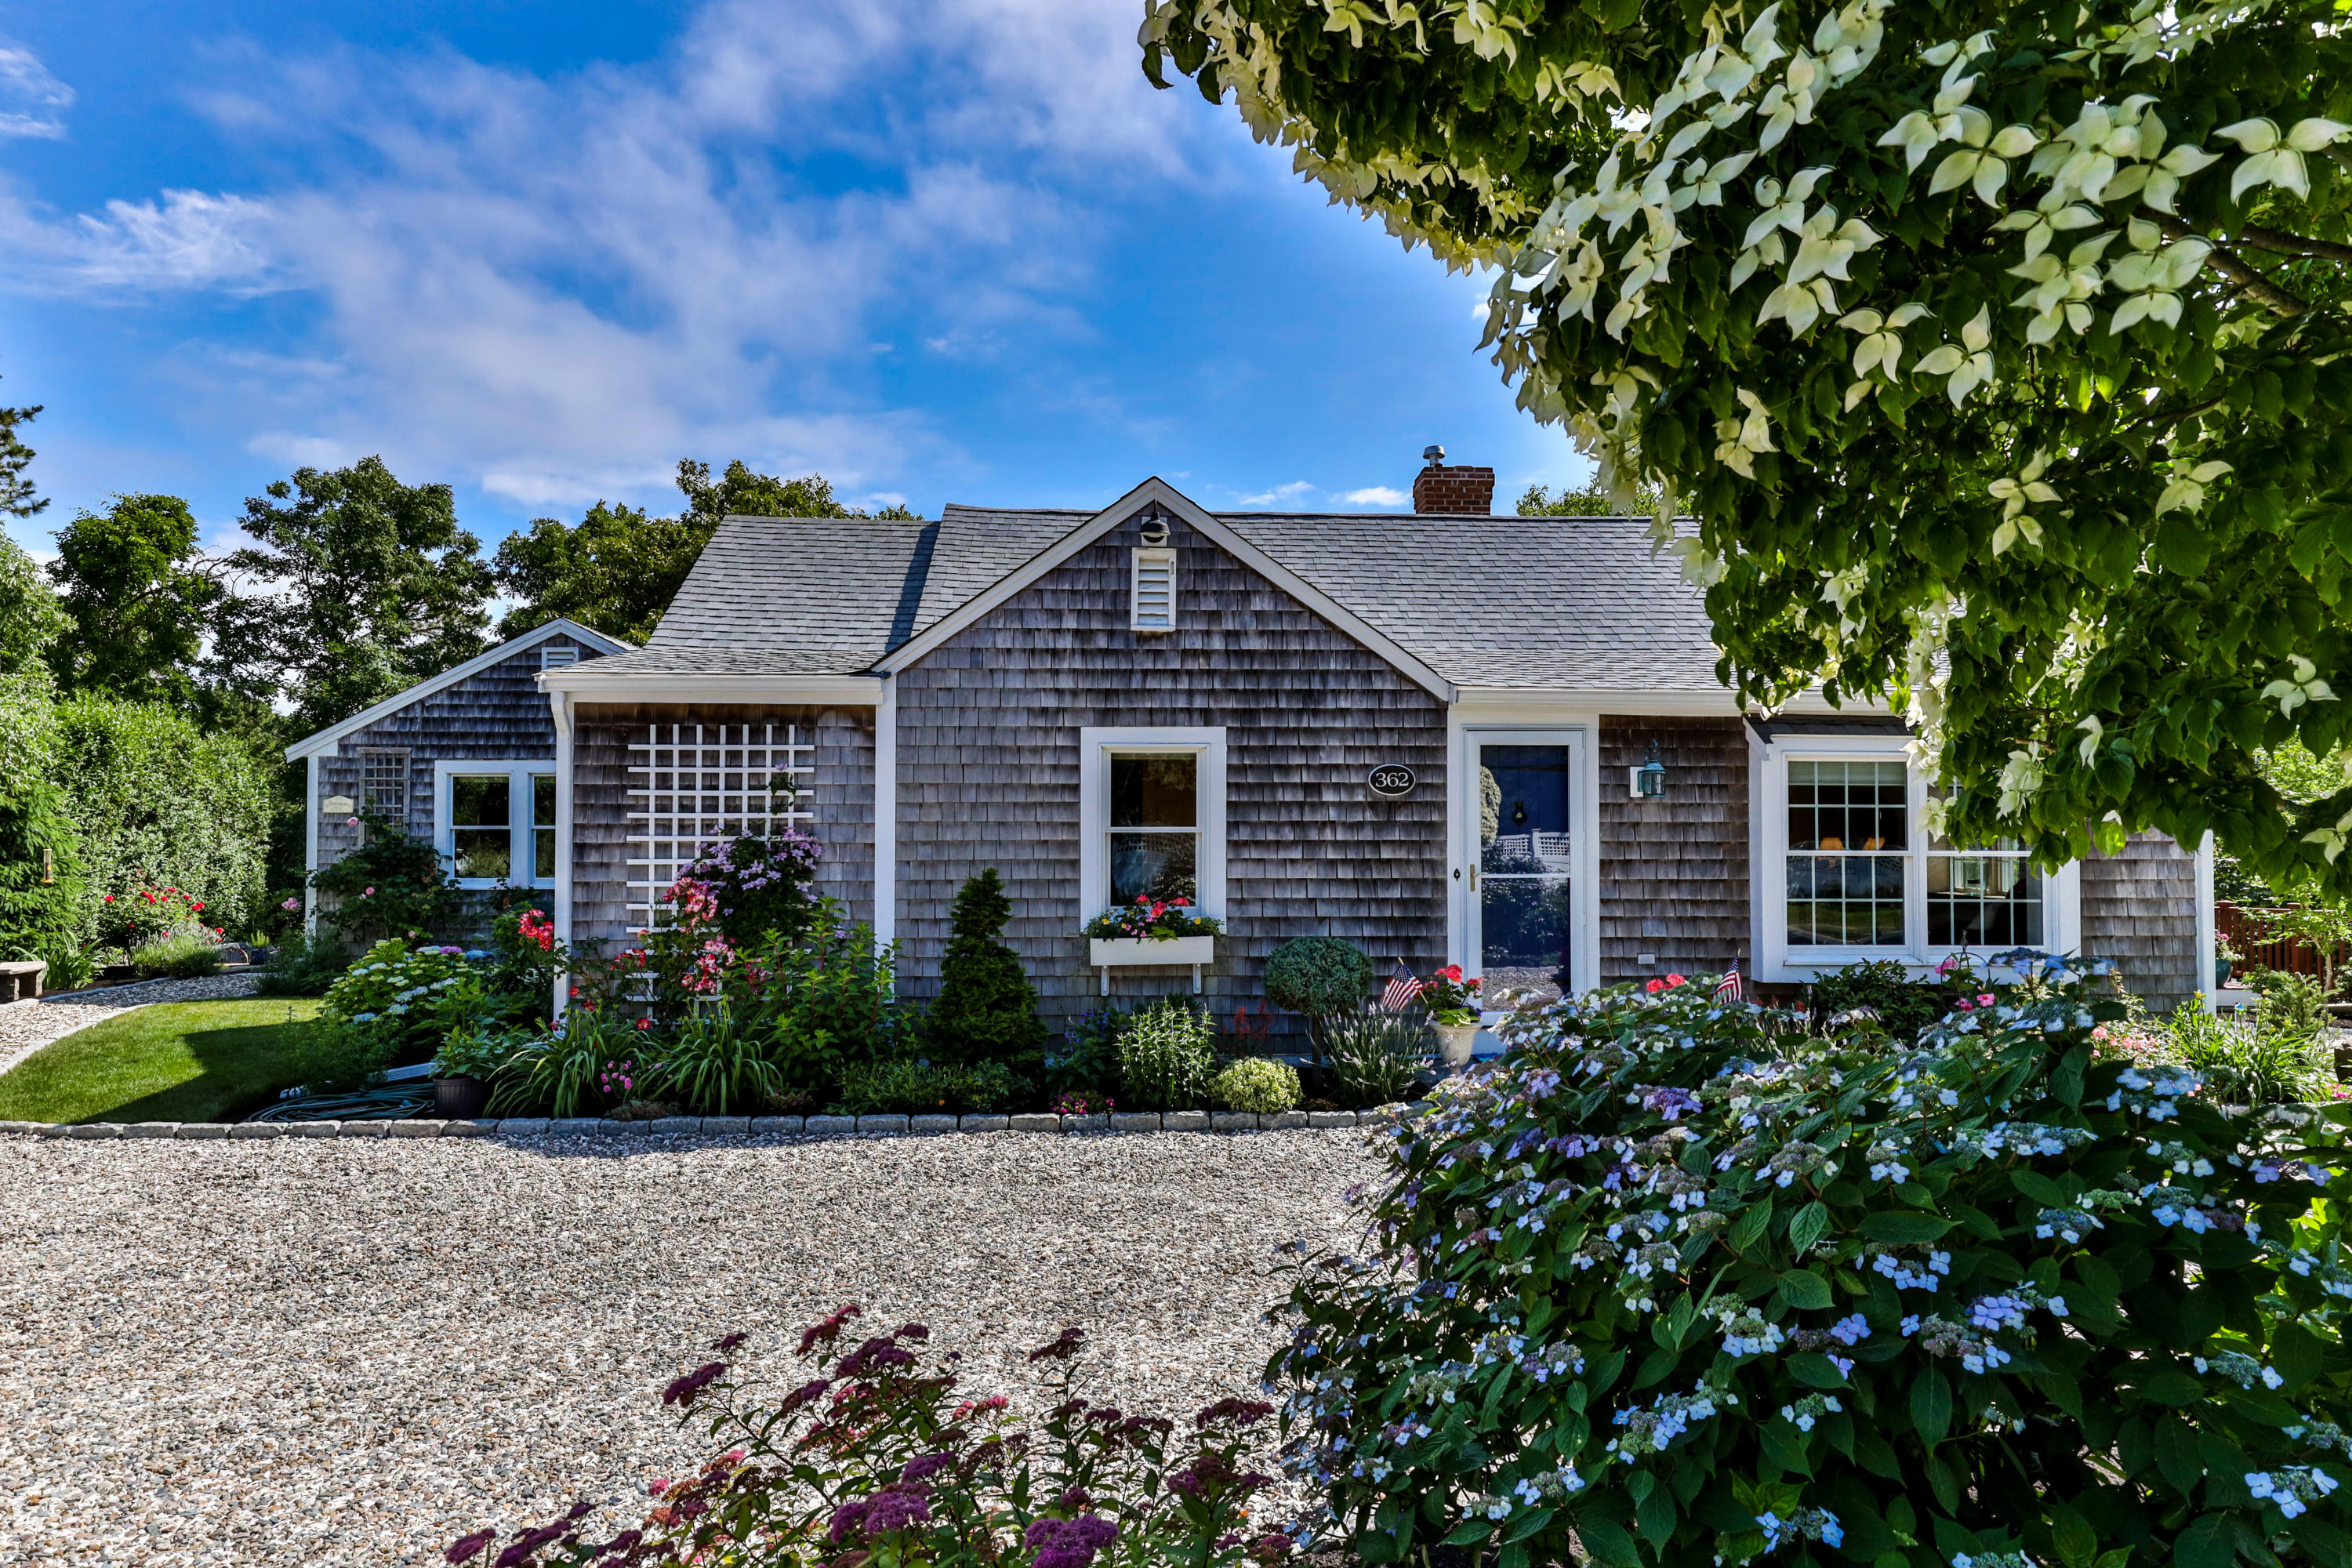 362 Orleans Road, Chatham, MA details